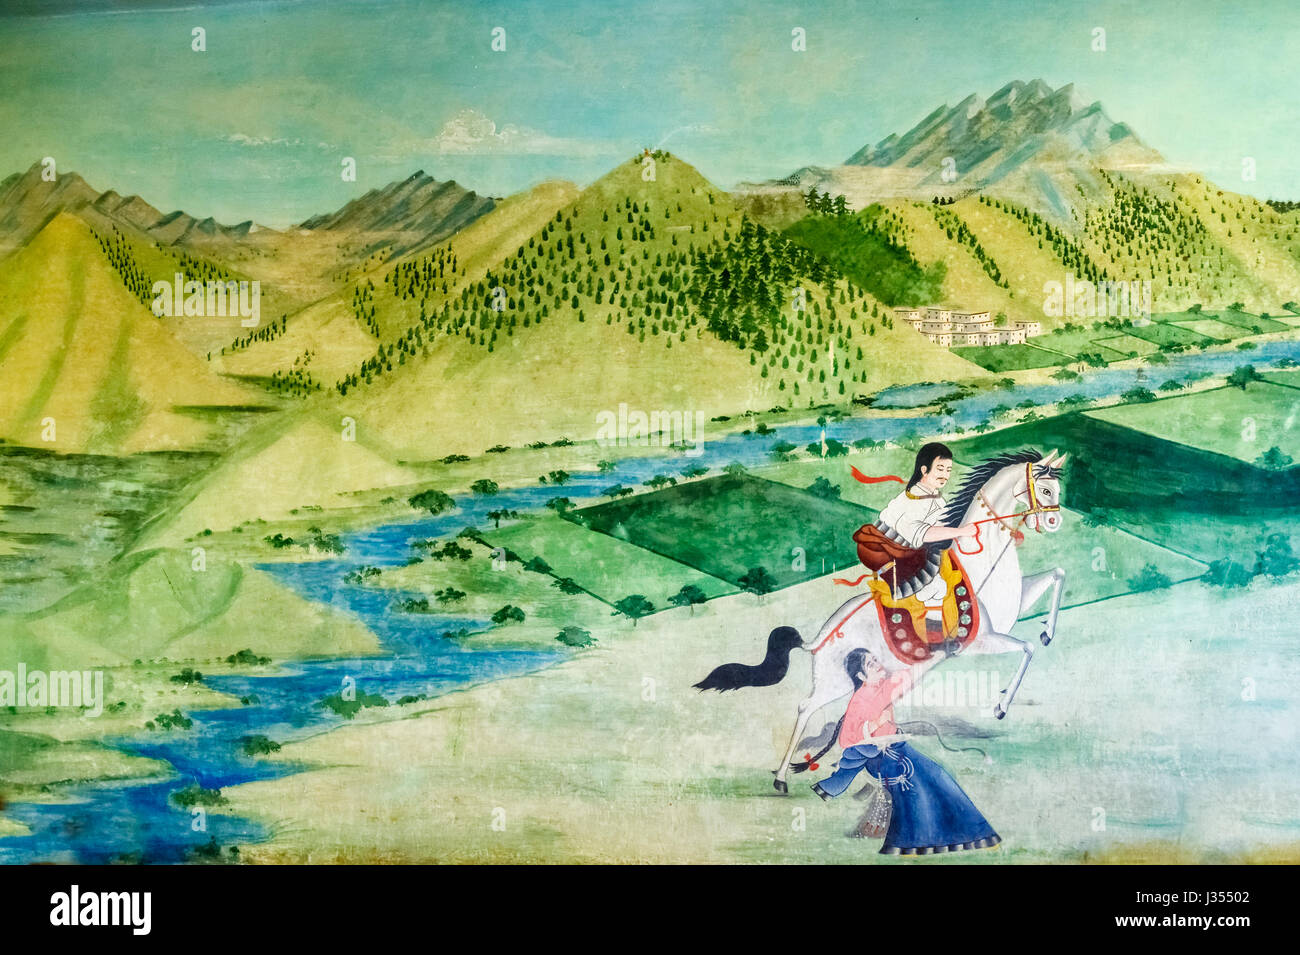 Wall painting, Chonor House Hotel, McLeodGanj, Dharamshala, north India: Tibetan mountainous scenery and culture, - Stock Image